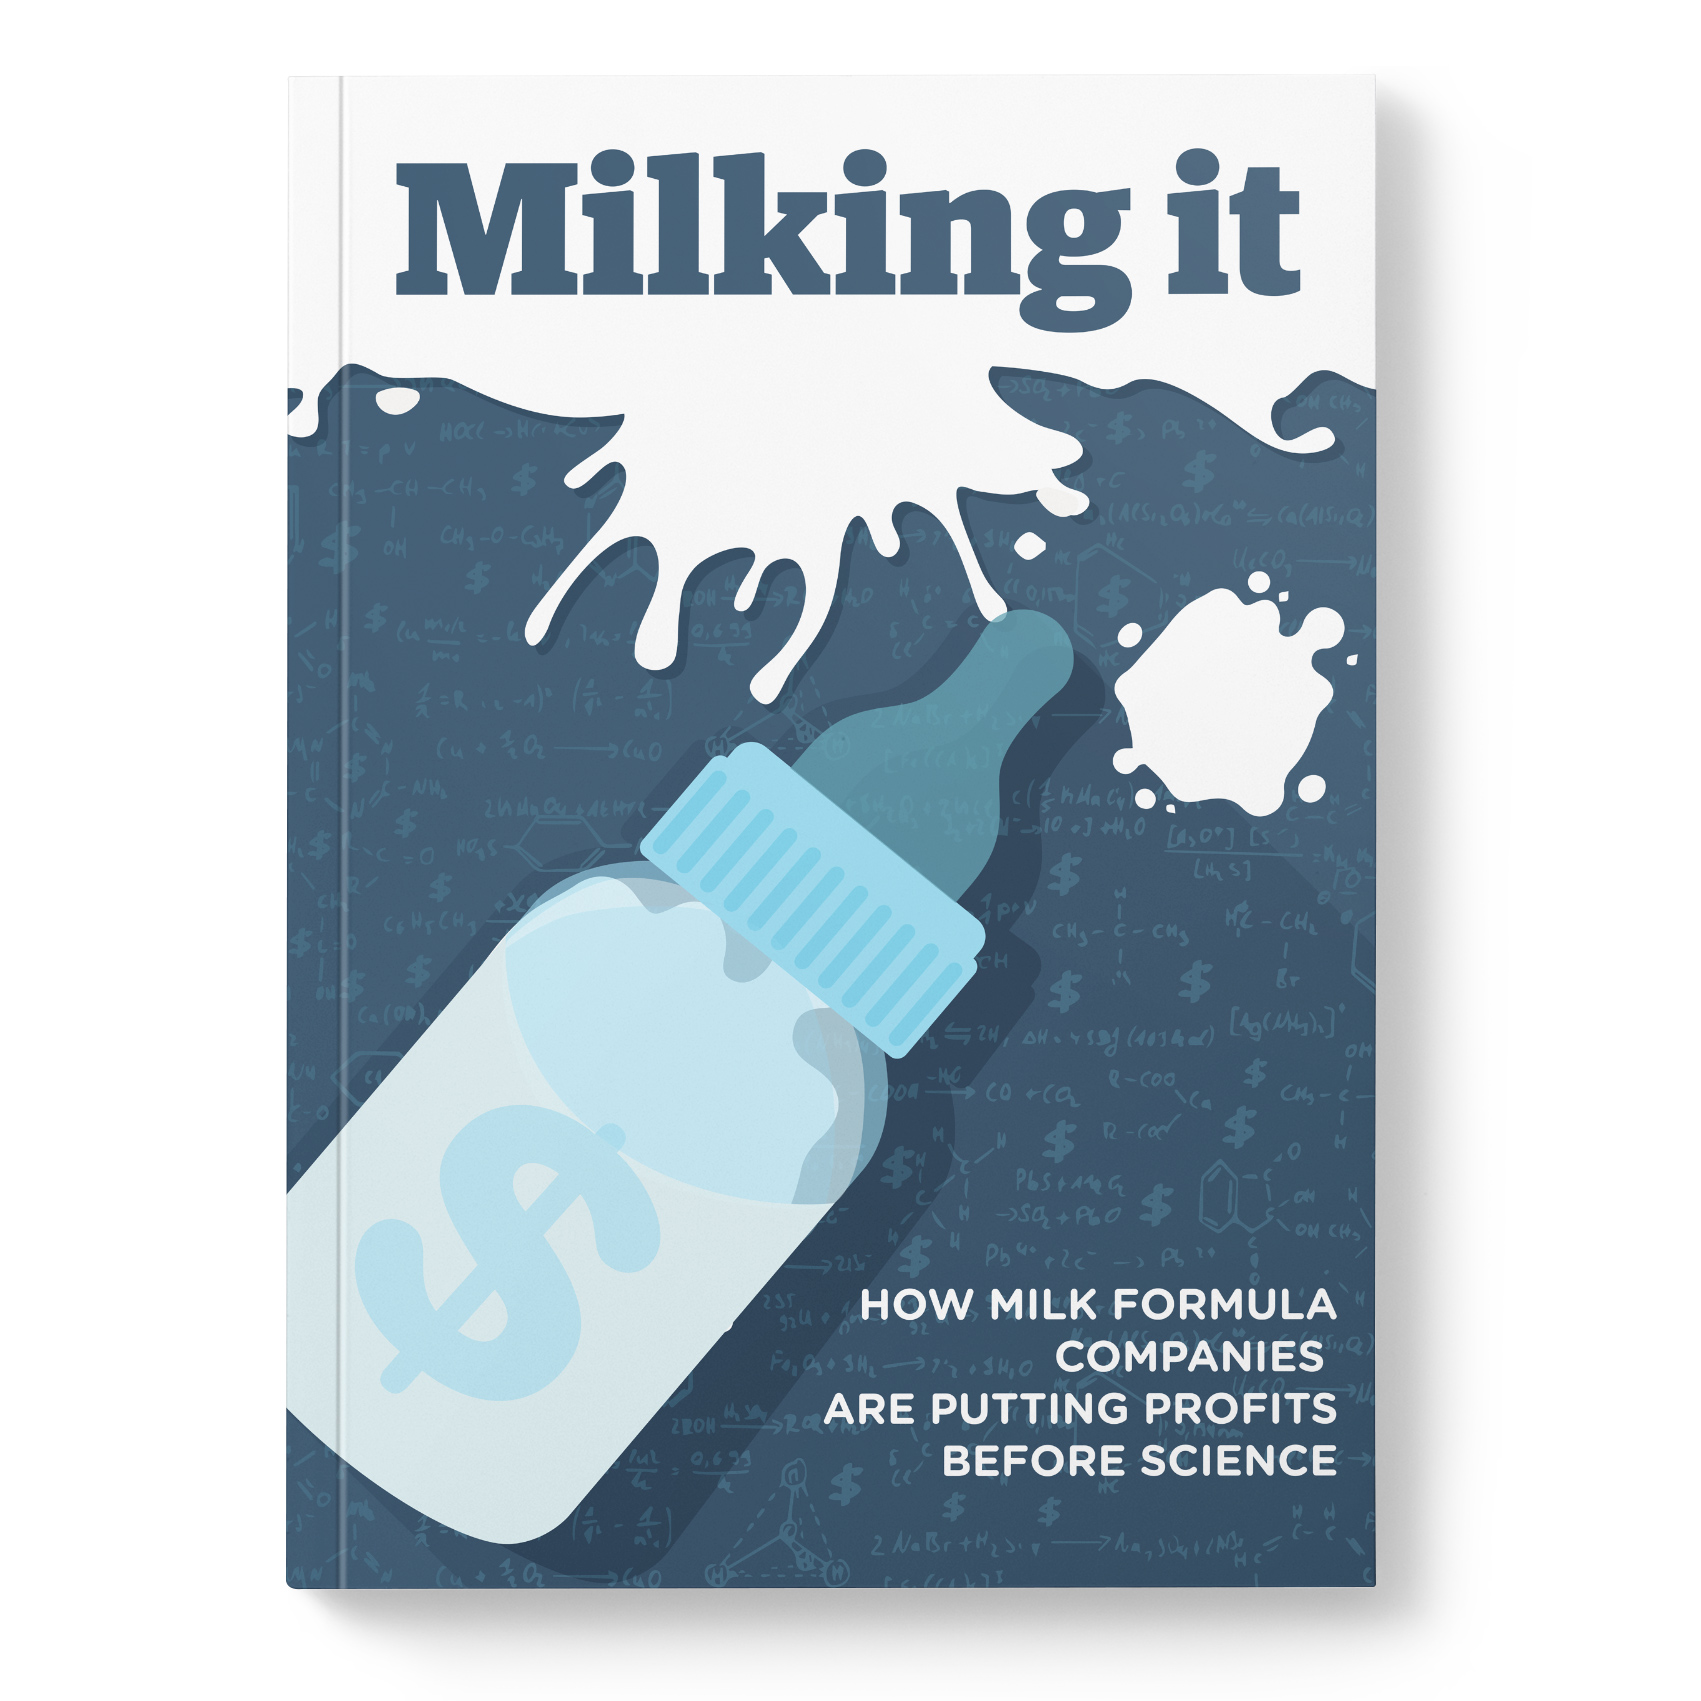 Milking It – How Milk Formula Companies are Putting Profits Before Science